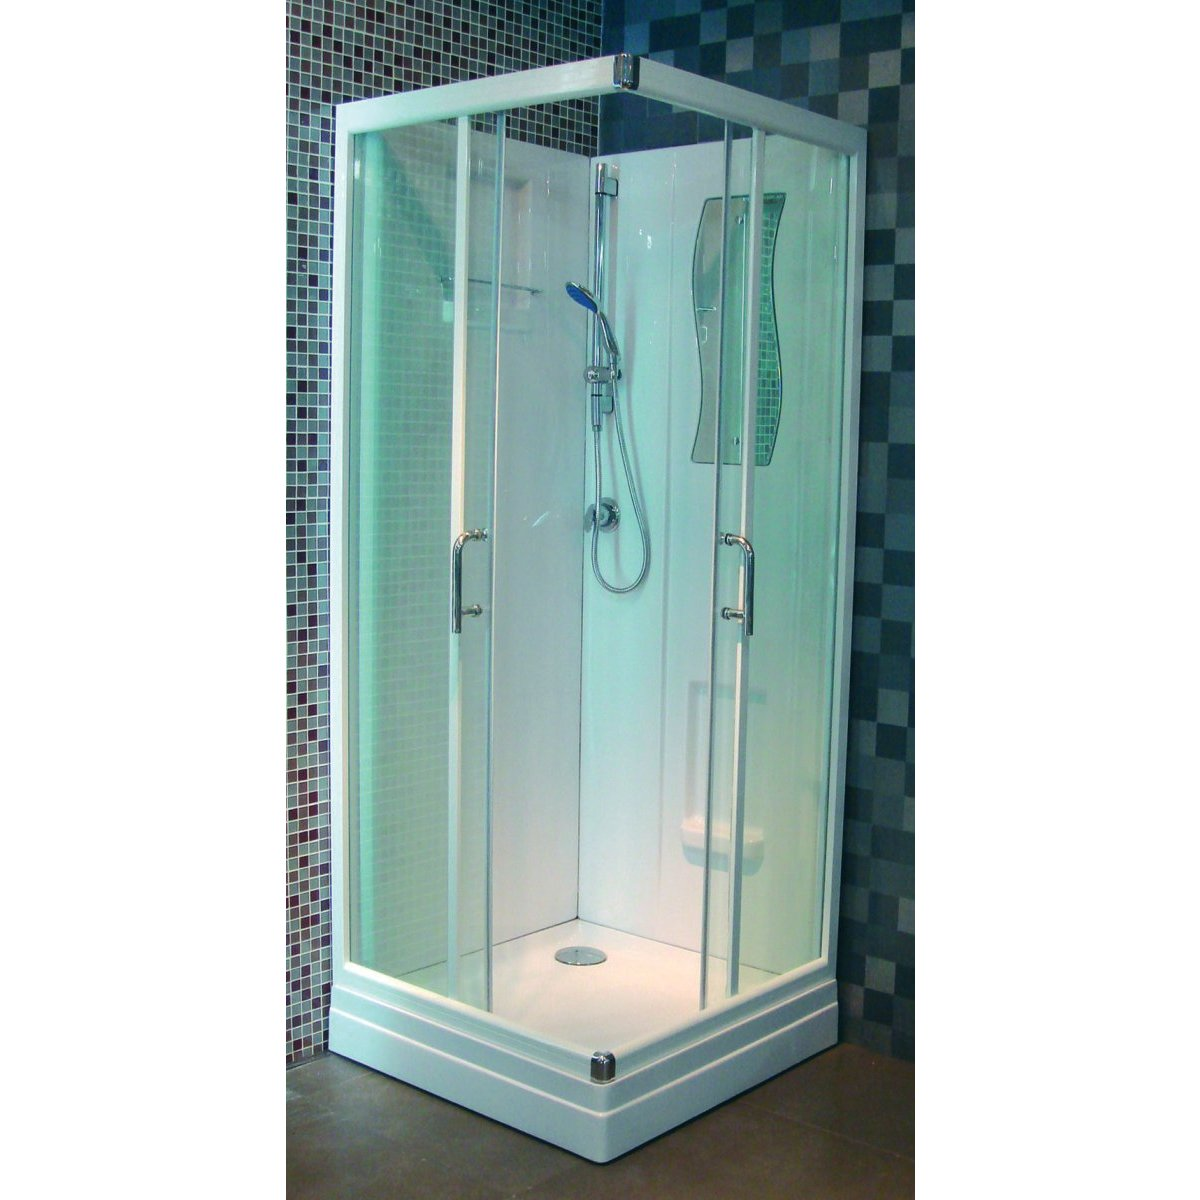 cabine de douche concerto 90 x 90 cm acc s d 39 angle porte coulissante. Black Bedroom Furniture Sets. Home Design Ideas